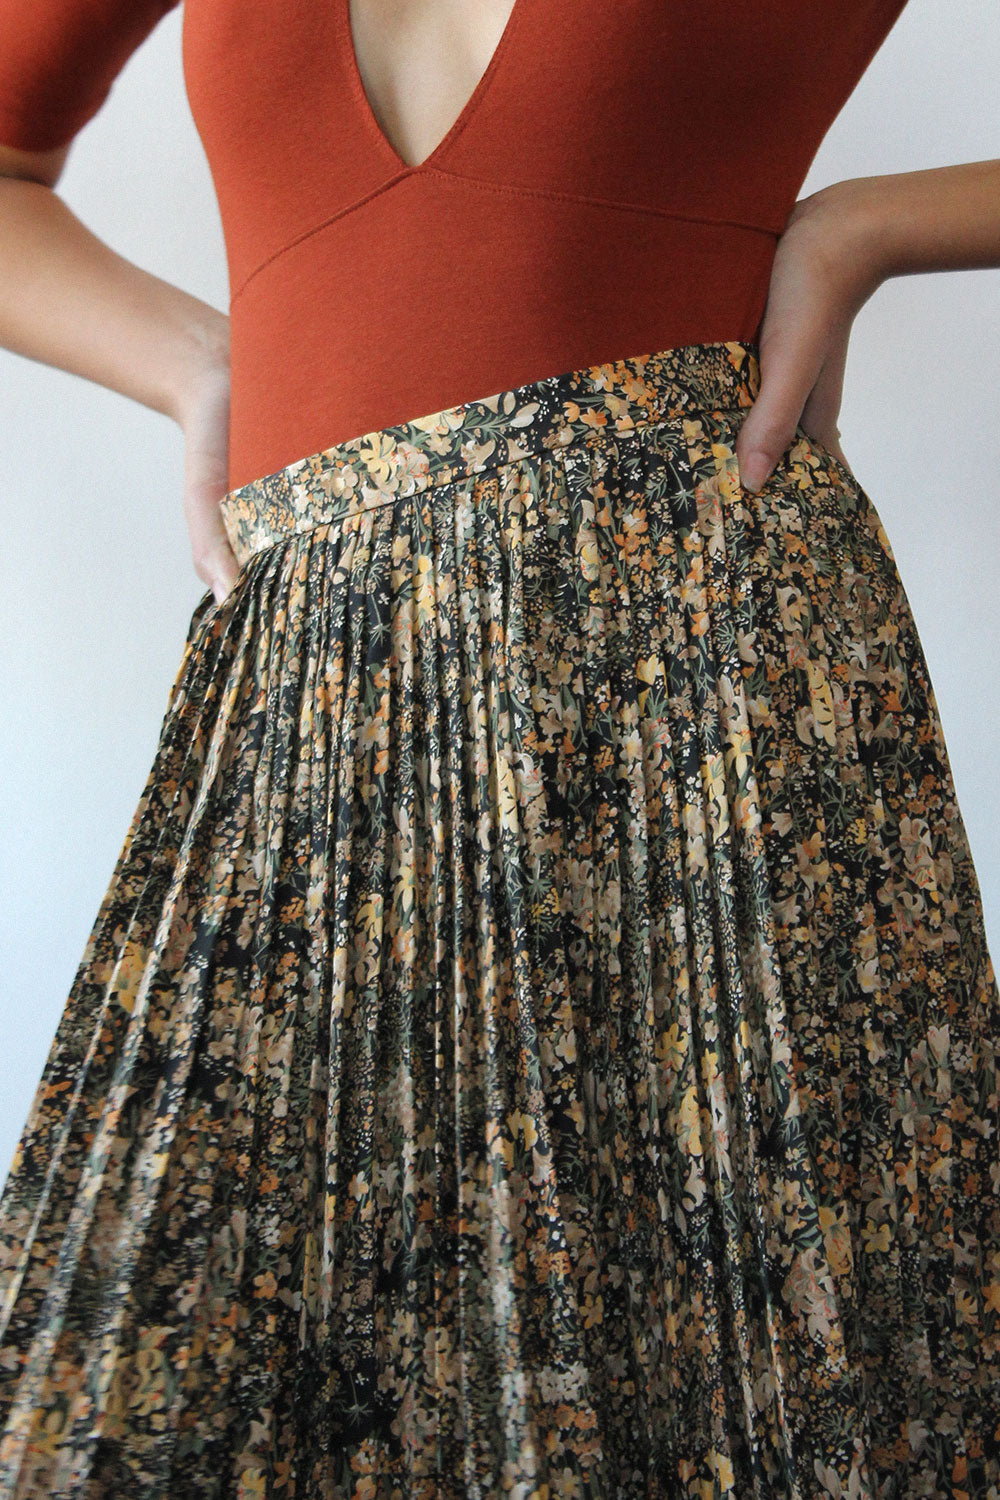 Picone Wildflower Pleated Skirt S/M